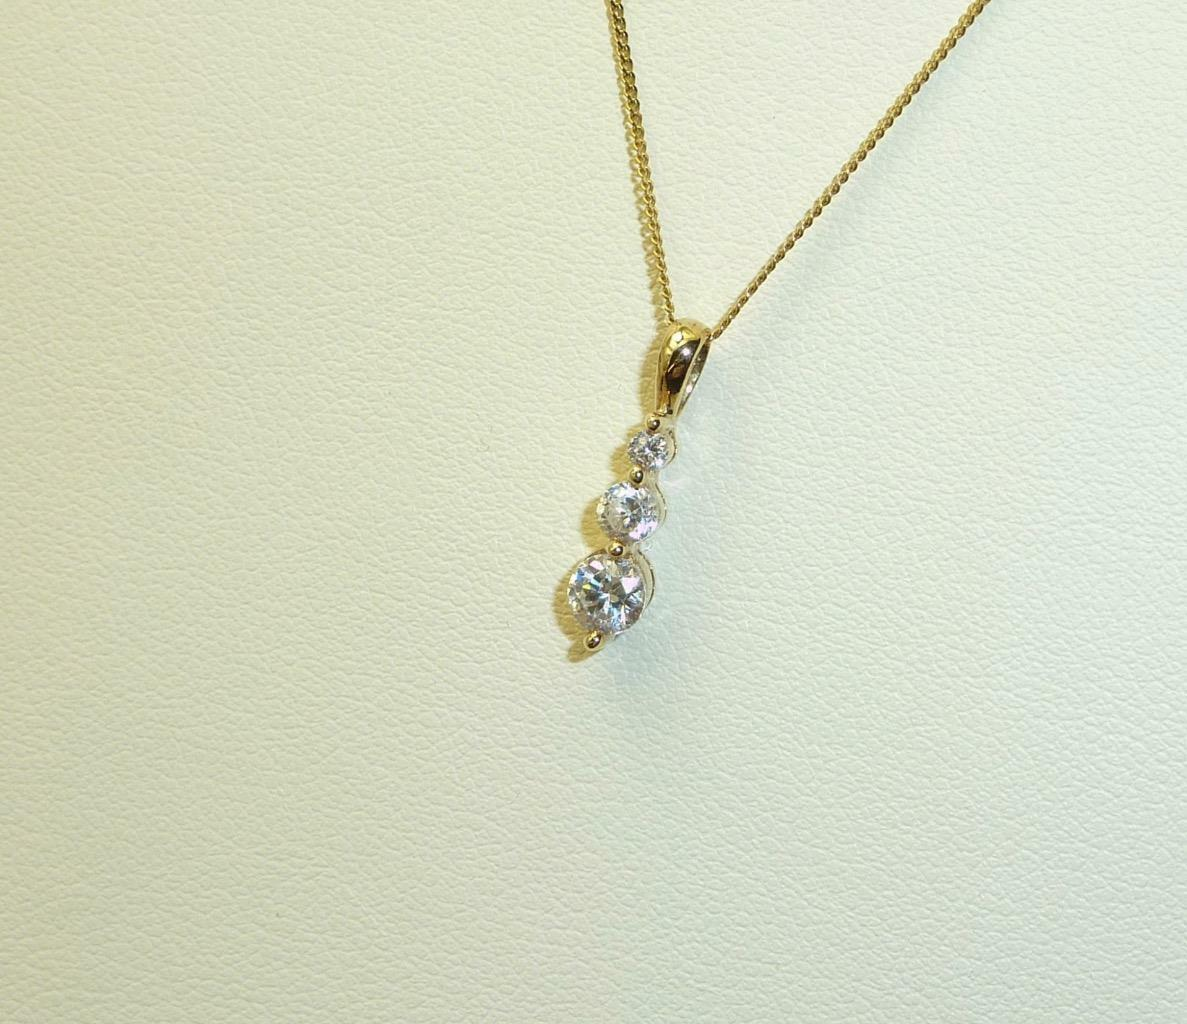 9carat 9K Yellow gold Cubic Zirconia Set Pendant & 18  Fine Hammered Curb Chain